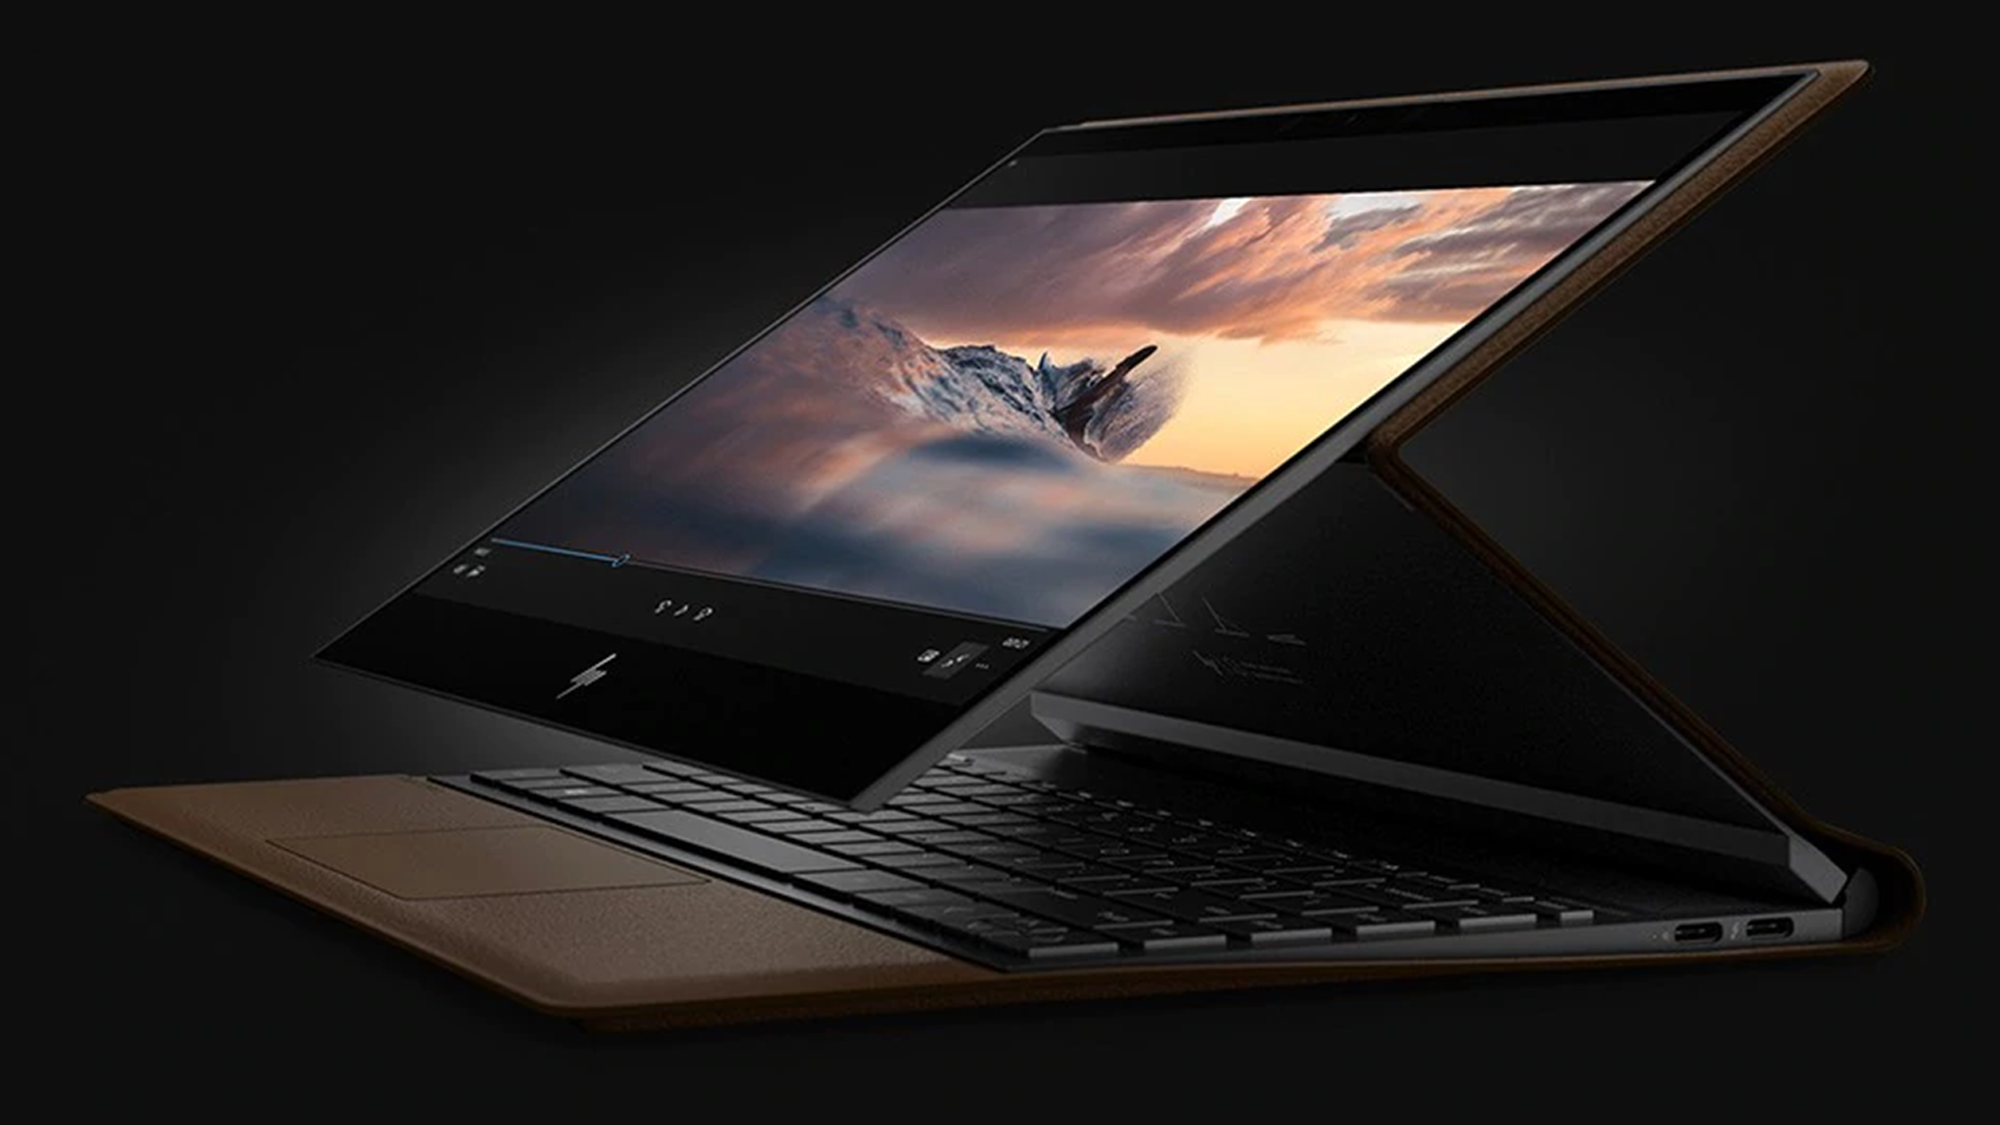 Photo of leather instead of metal: HP is trying to reinvent the design of laptops